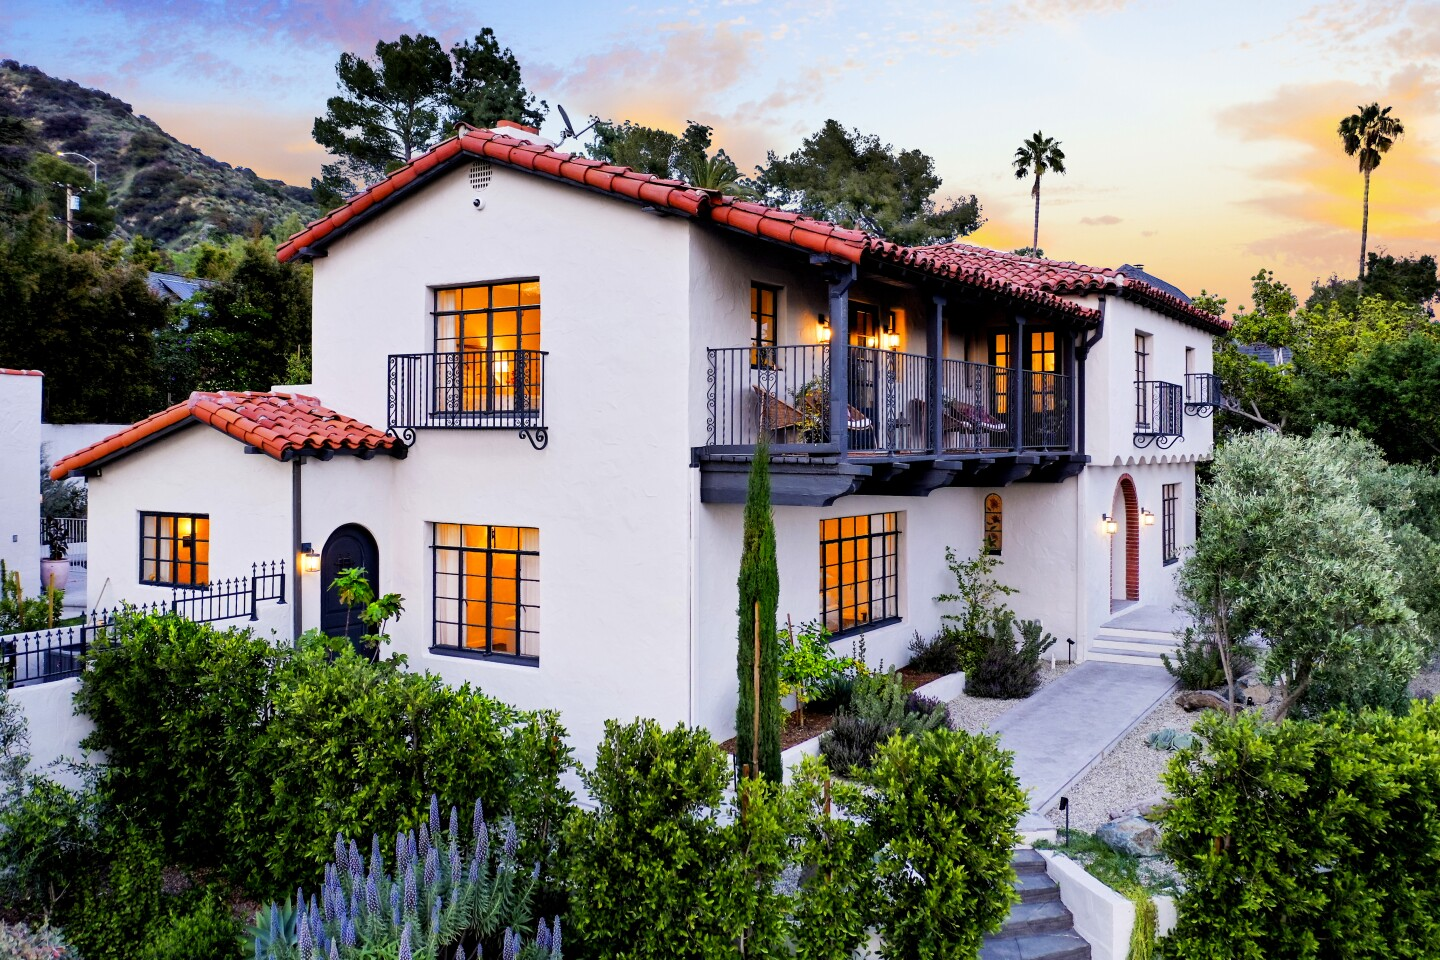 Listed for $2.685 million, the Spanish Revival-style home recently underwent a two-year renovation that introduced a host of modern updates while preserving certain period details. Features include redwood beams, arched doorways and a grand fireplace in the living room. Custom arched steel doors connect the indoor-outdoor living spaces. The 4,100-square-foot house has four bedrooms including two master suites. A La Cornue range with bronze accents steals the show in the kitchen.